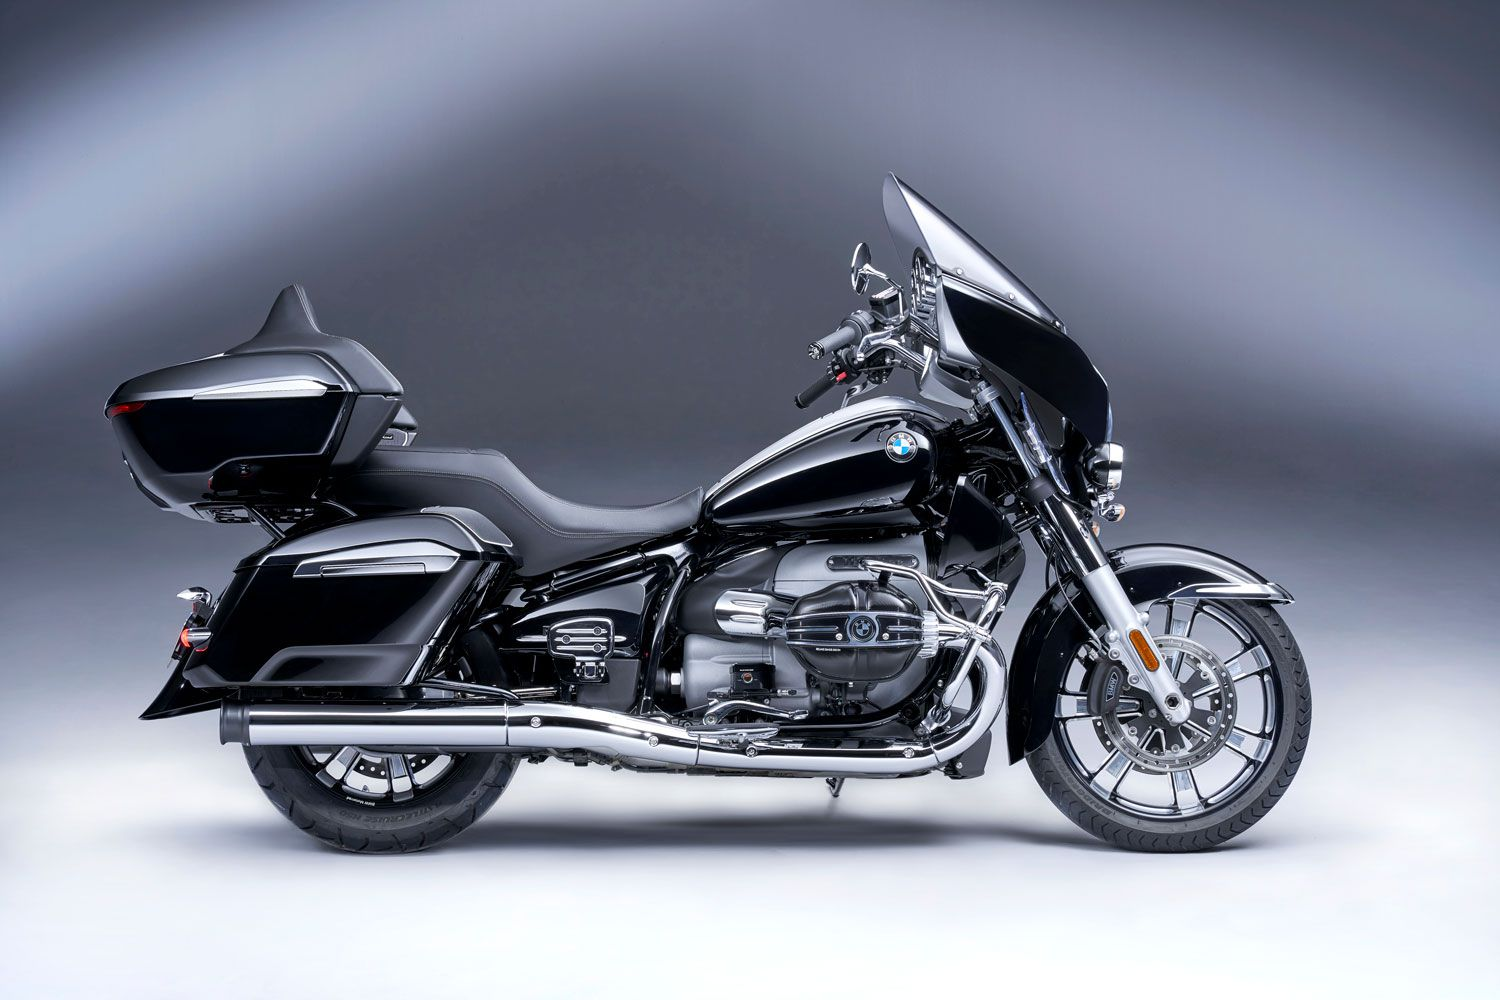 With the 2022 BMW R 18 Transcontinental, BMW continues to move in on what has traditionally been Harley country.